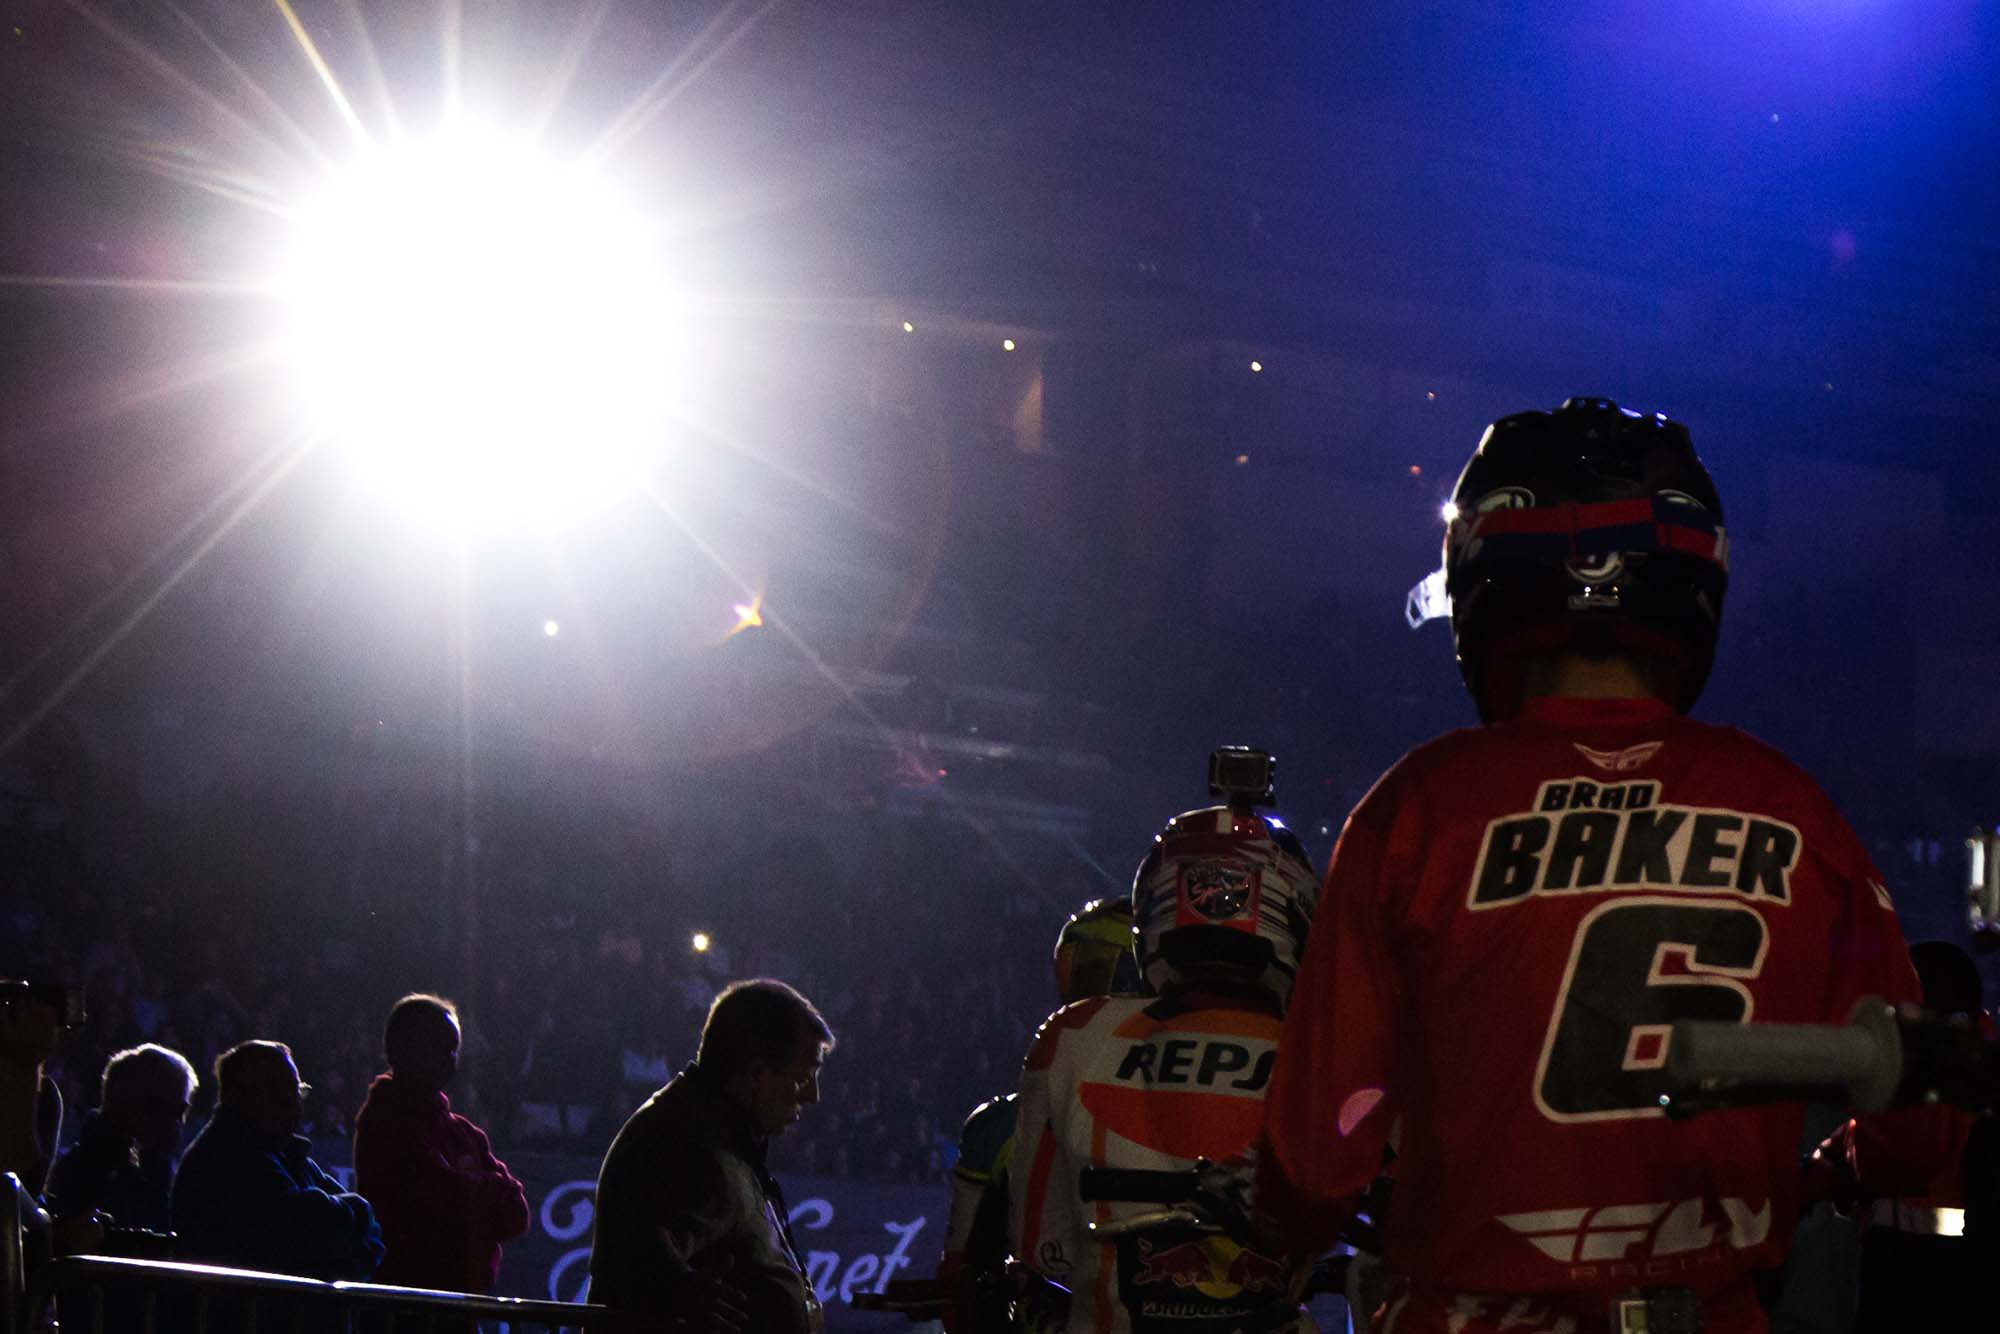 Superprestigio Dirt Track 2015 Superprestigio-2015-Barcelona-Steve-English-16